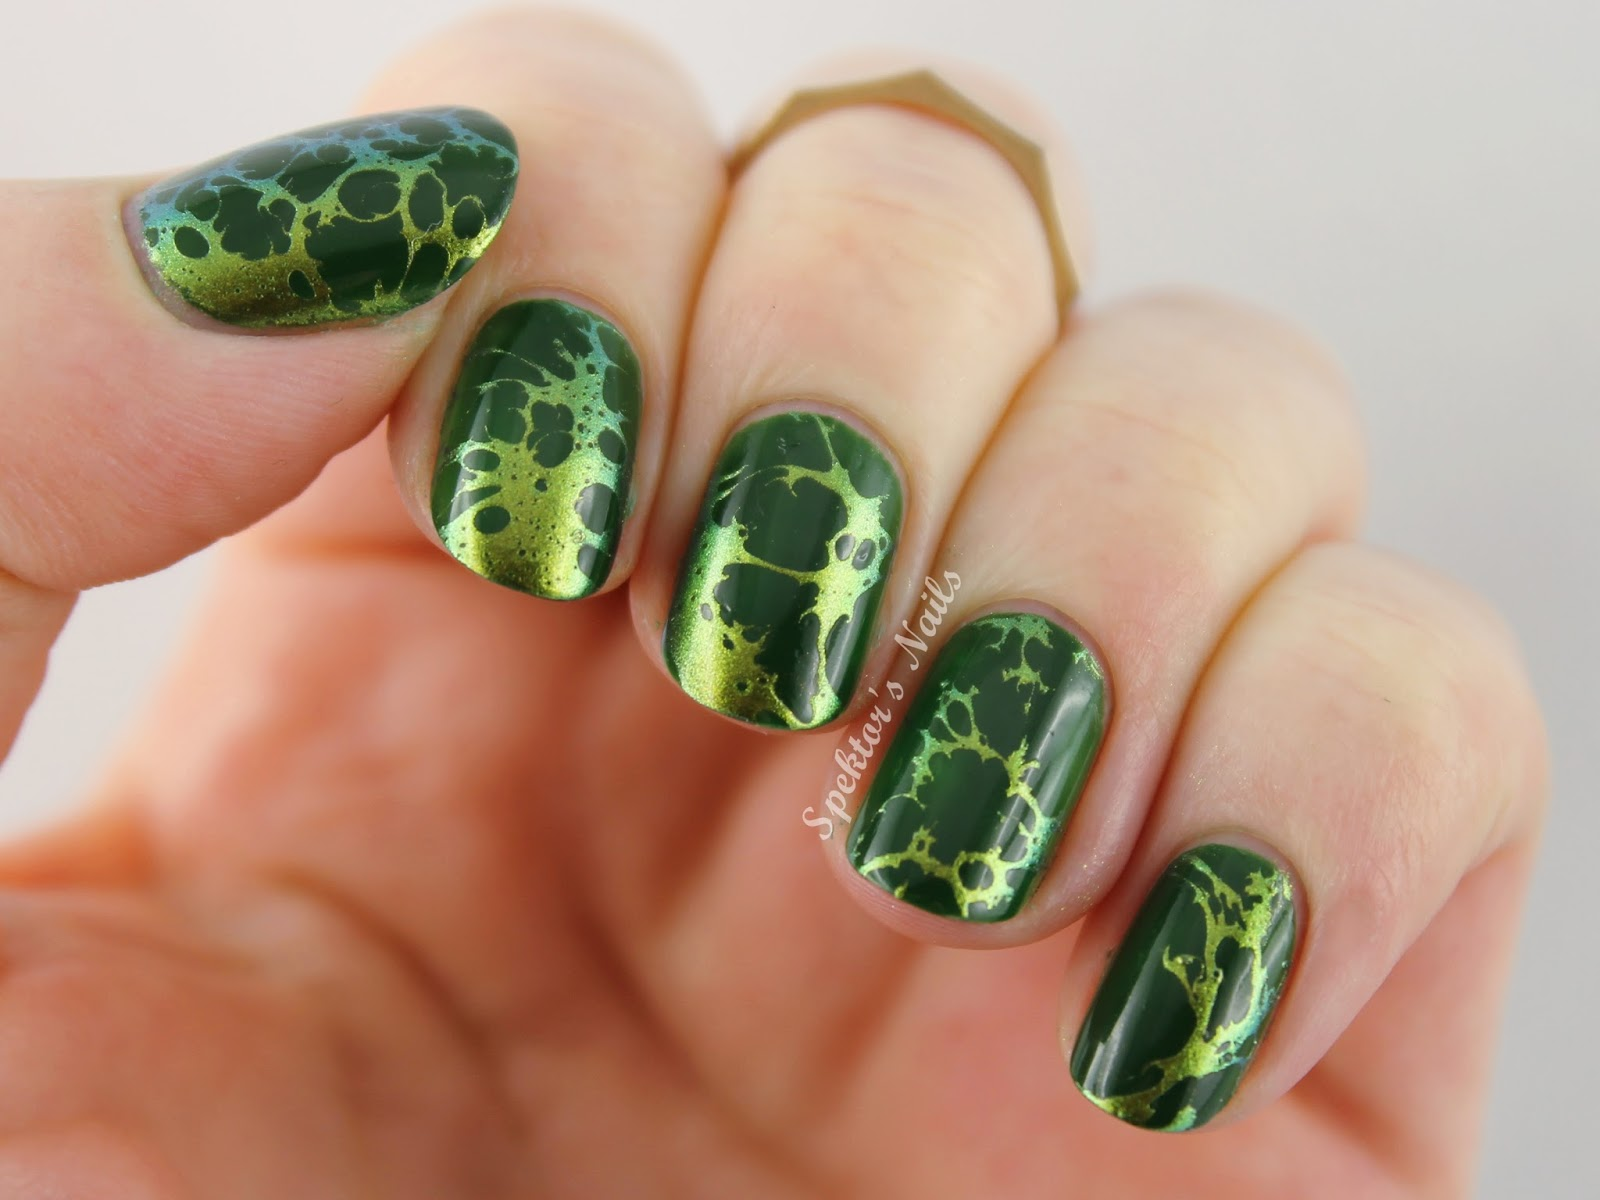 Waterspotted Nails - Tutorial